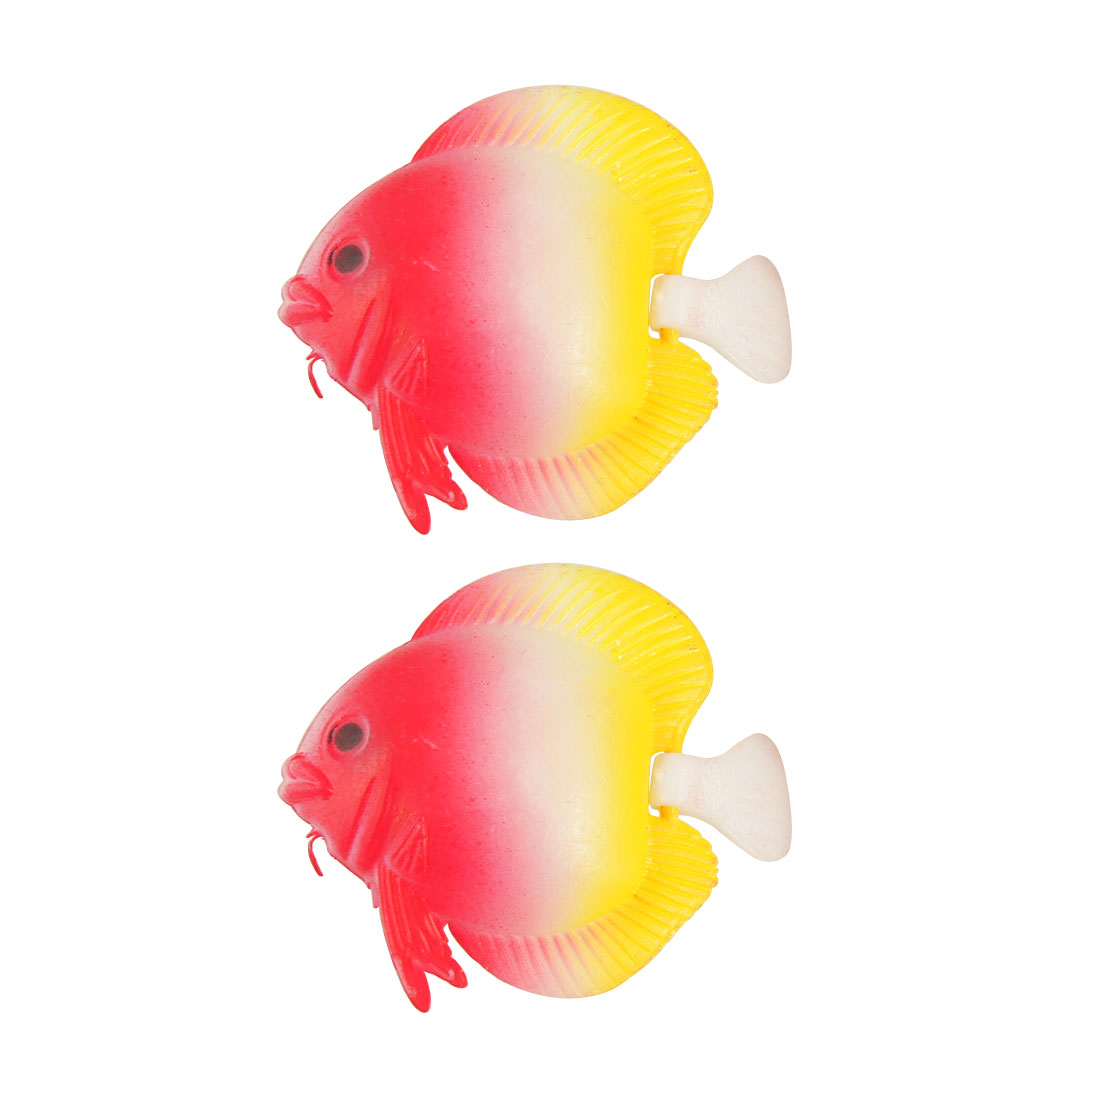 2 Pcs Swing Tail Aquarium Floating Artificial Fish Red Yellow White